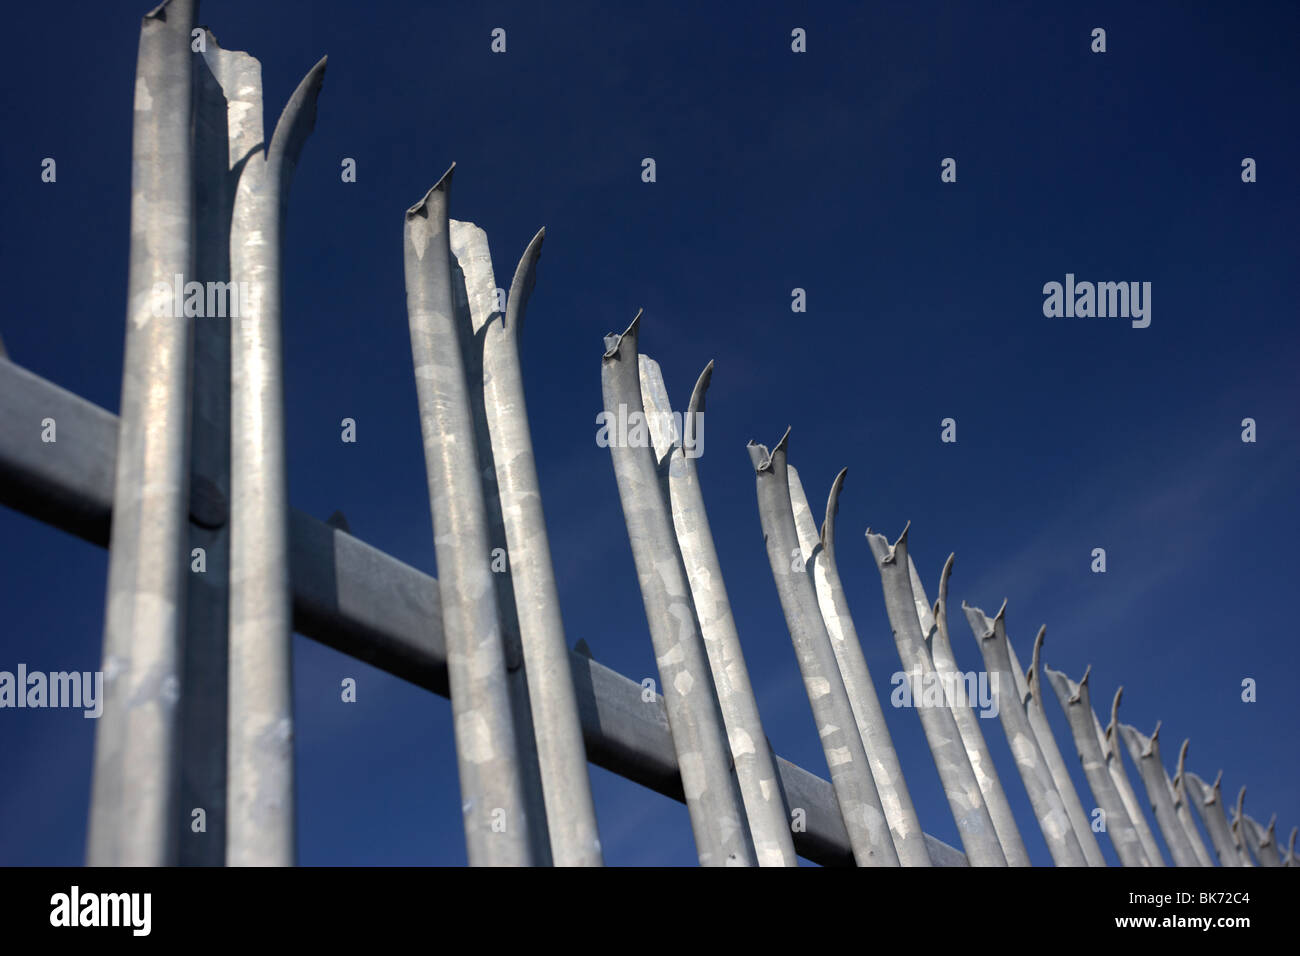 row of spikes at the top of a metal security fence in the uk - Stock Image